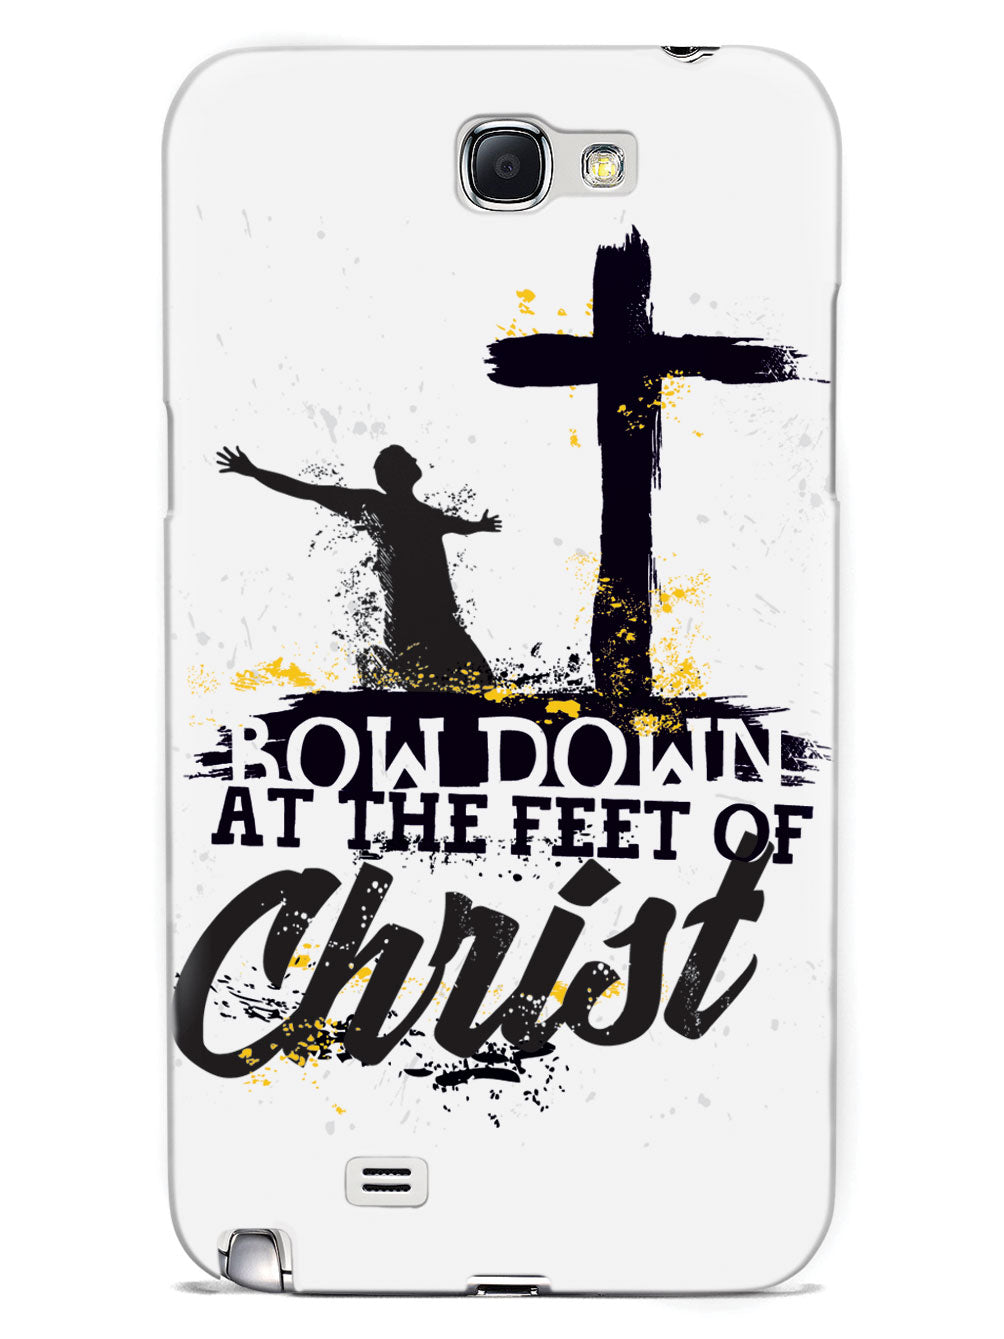 Bow Down At The Feet Of Christ - White Case